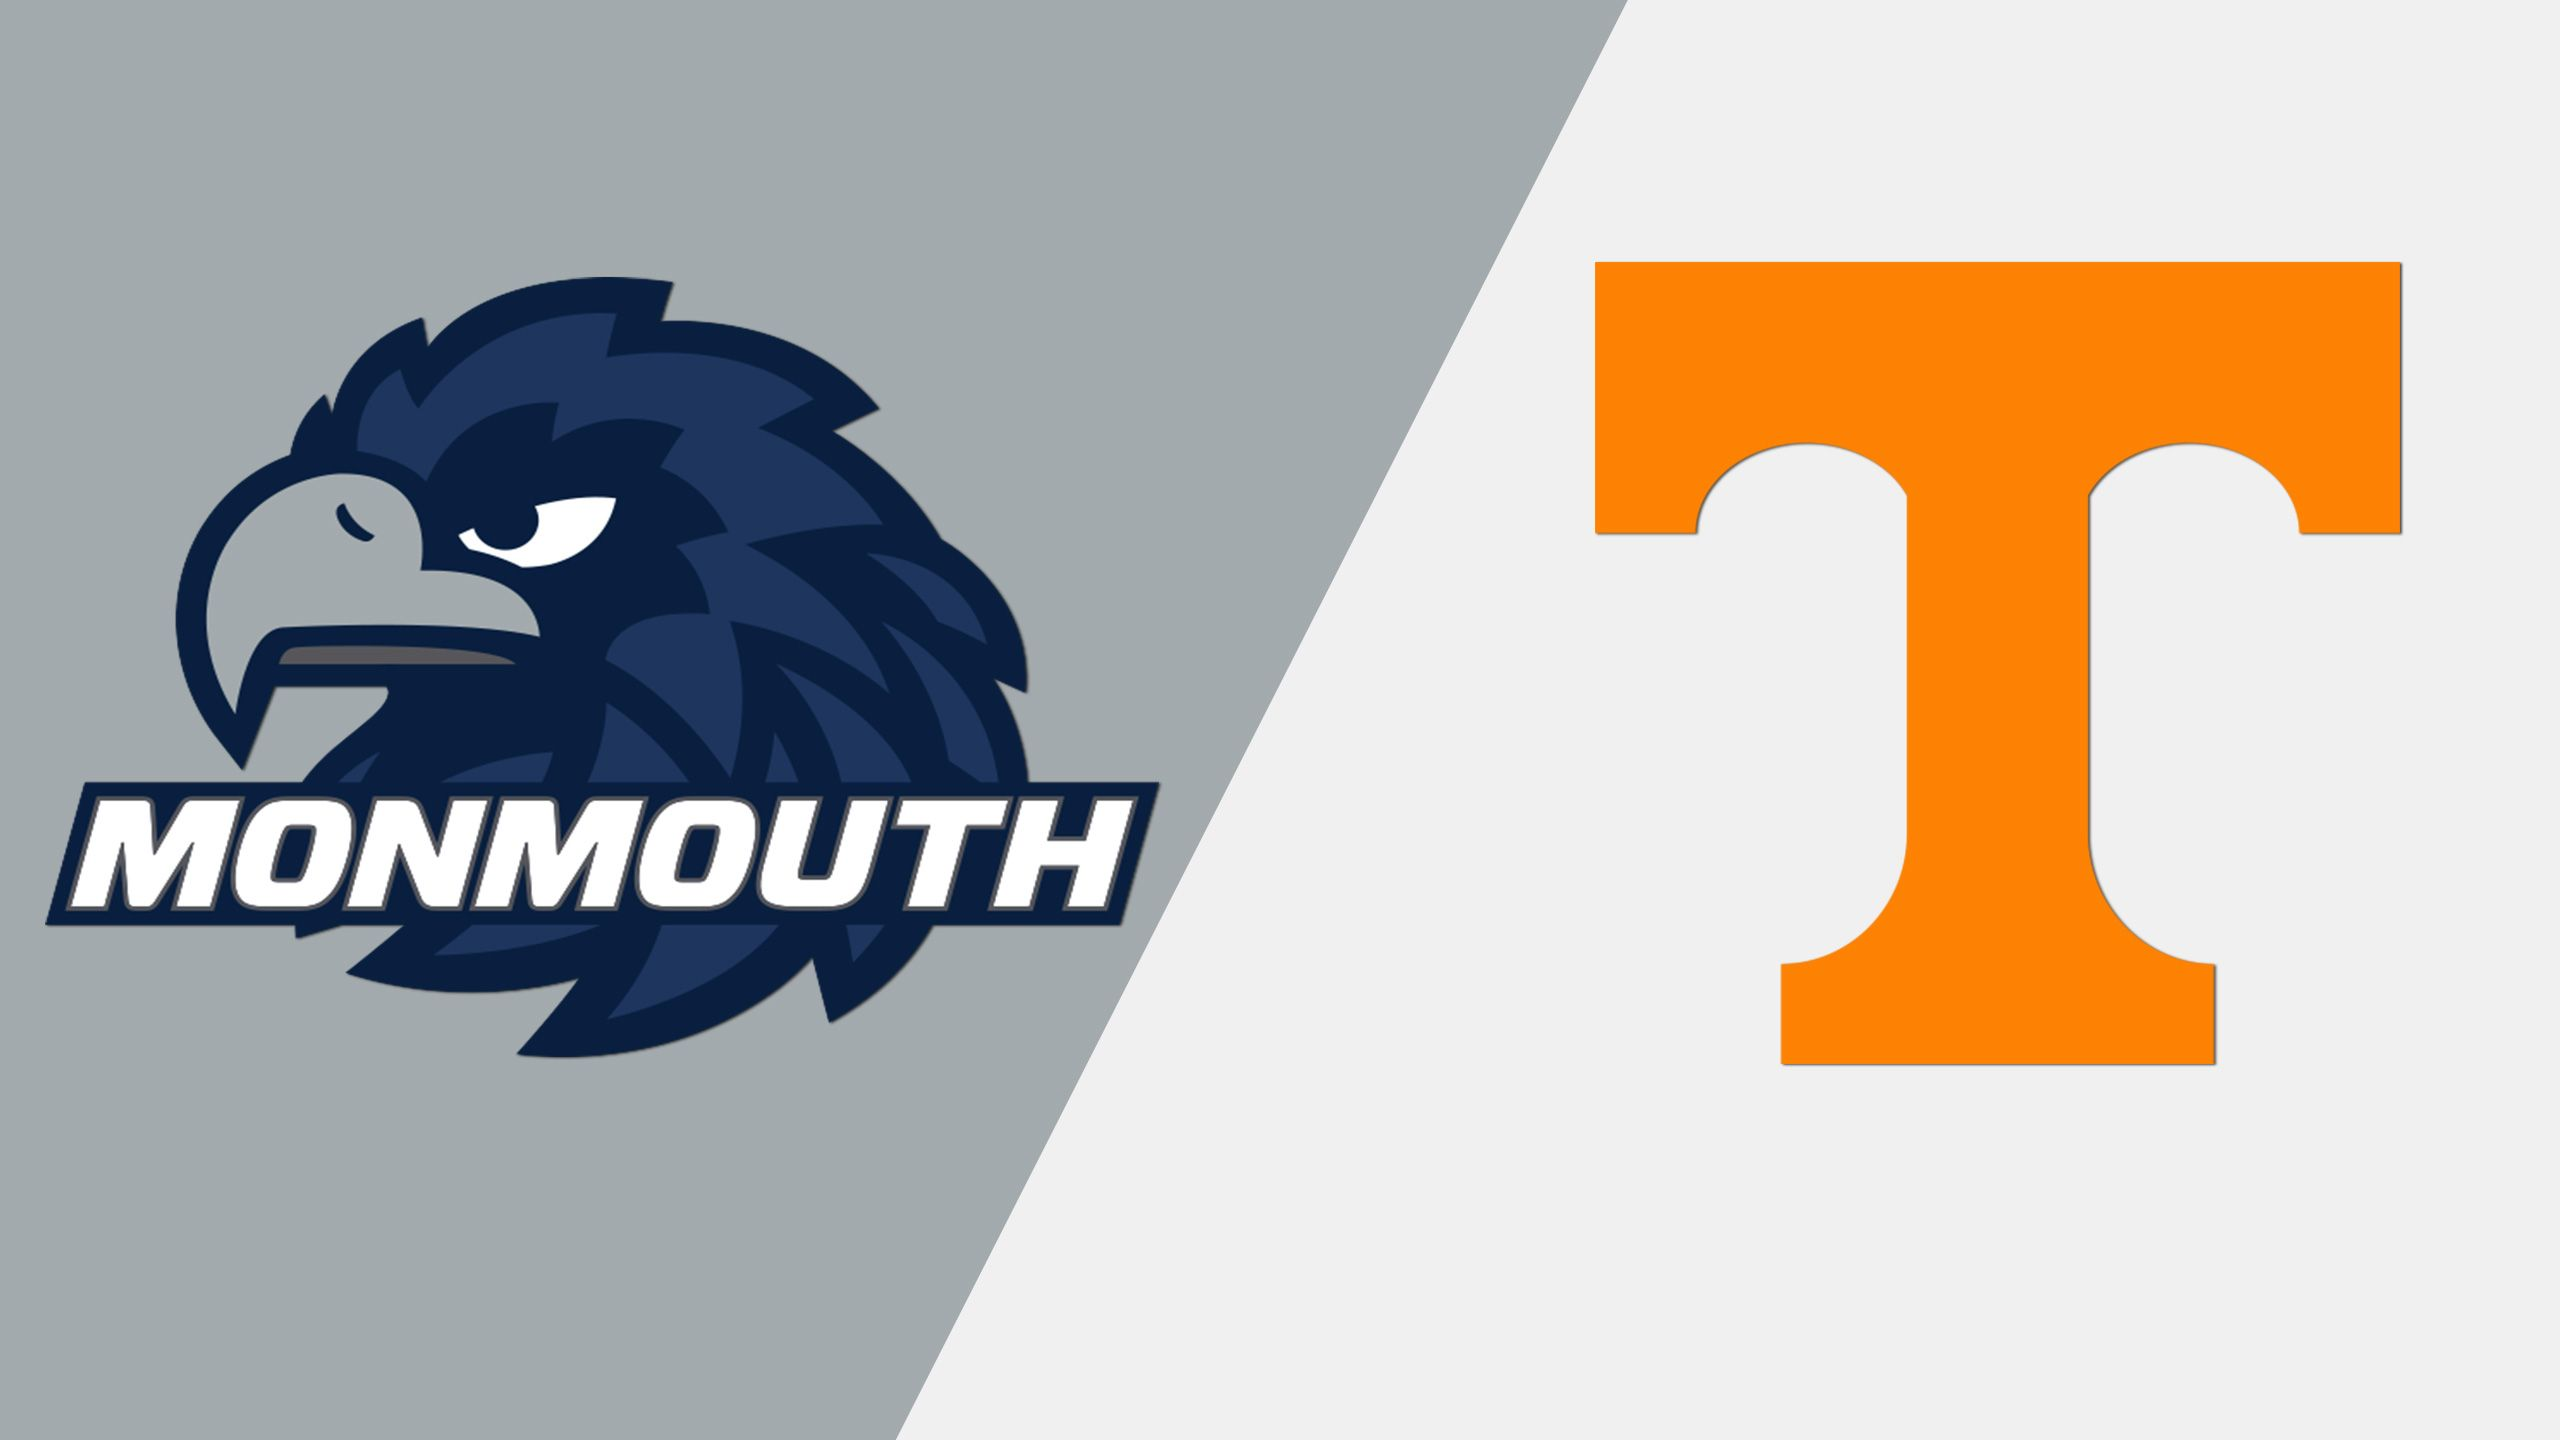 Monmouth vs. #10 Tennessee (Site 8 / Game 2) (NCAA Softball Championship)